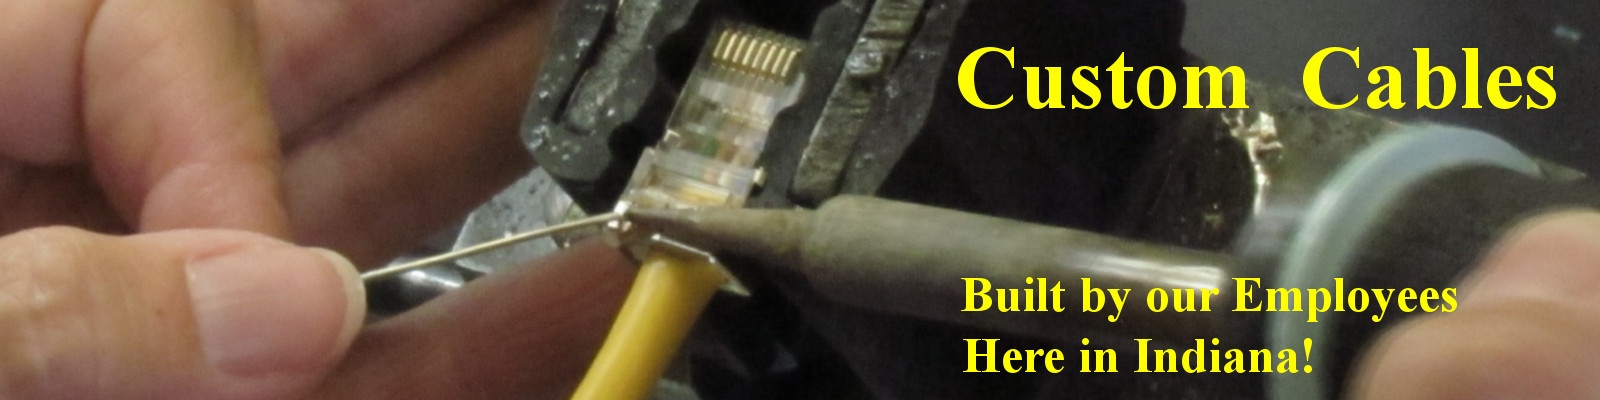 Did you know that we build Custom Cables every day?